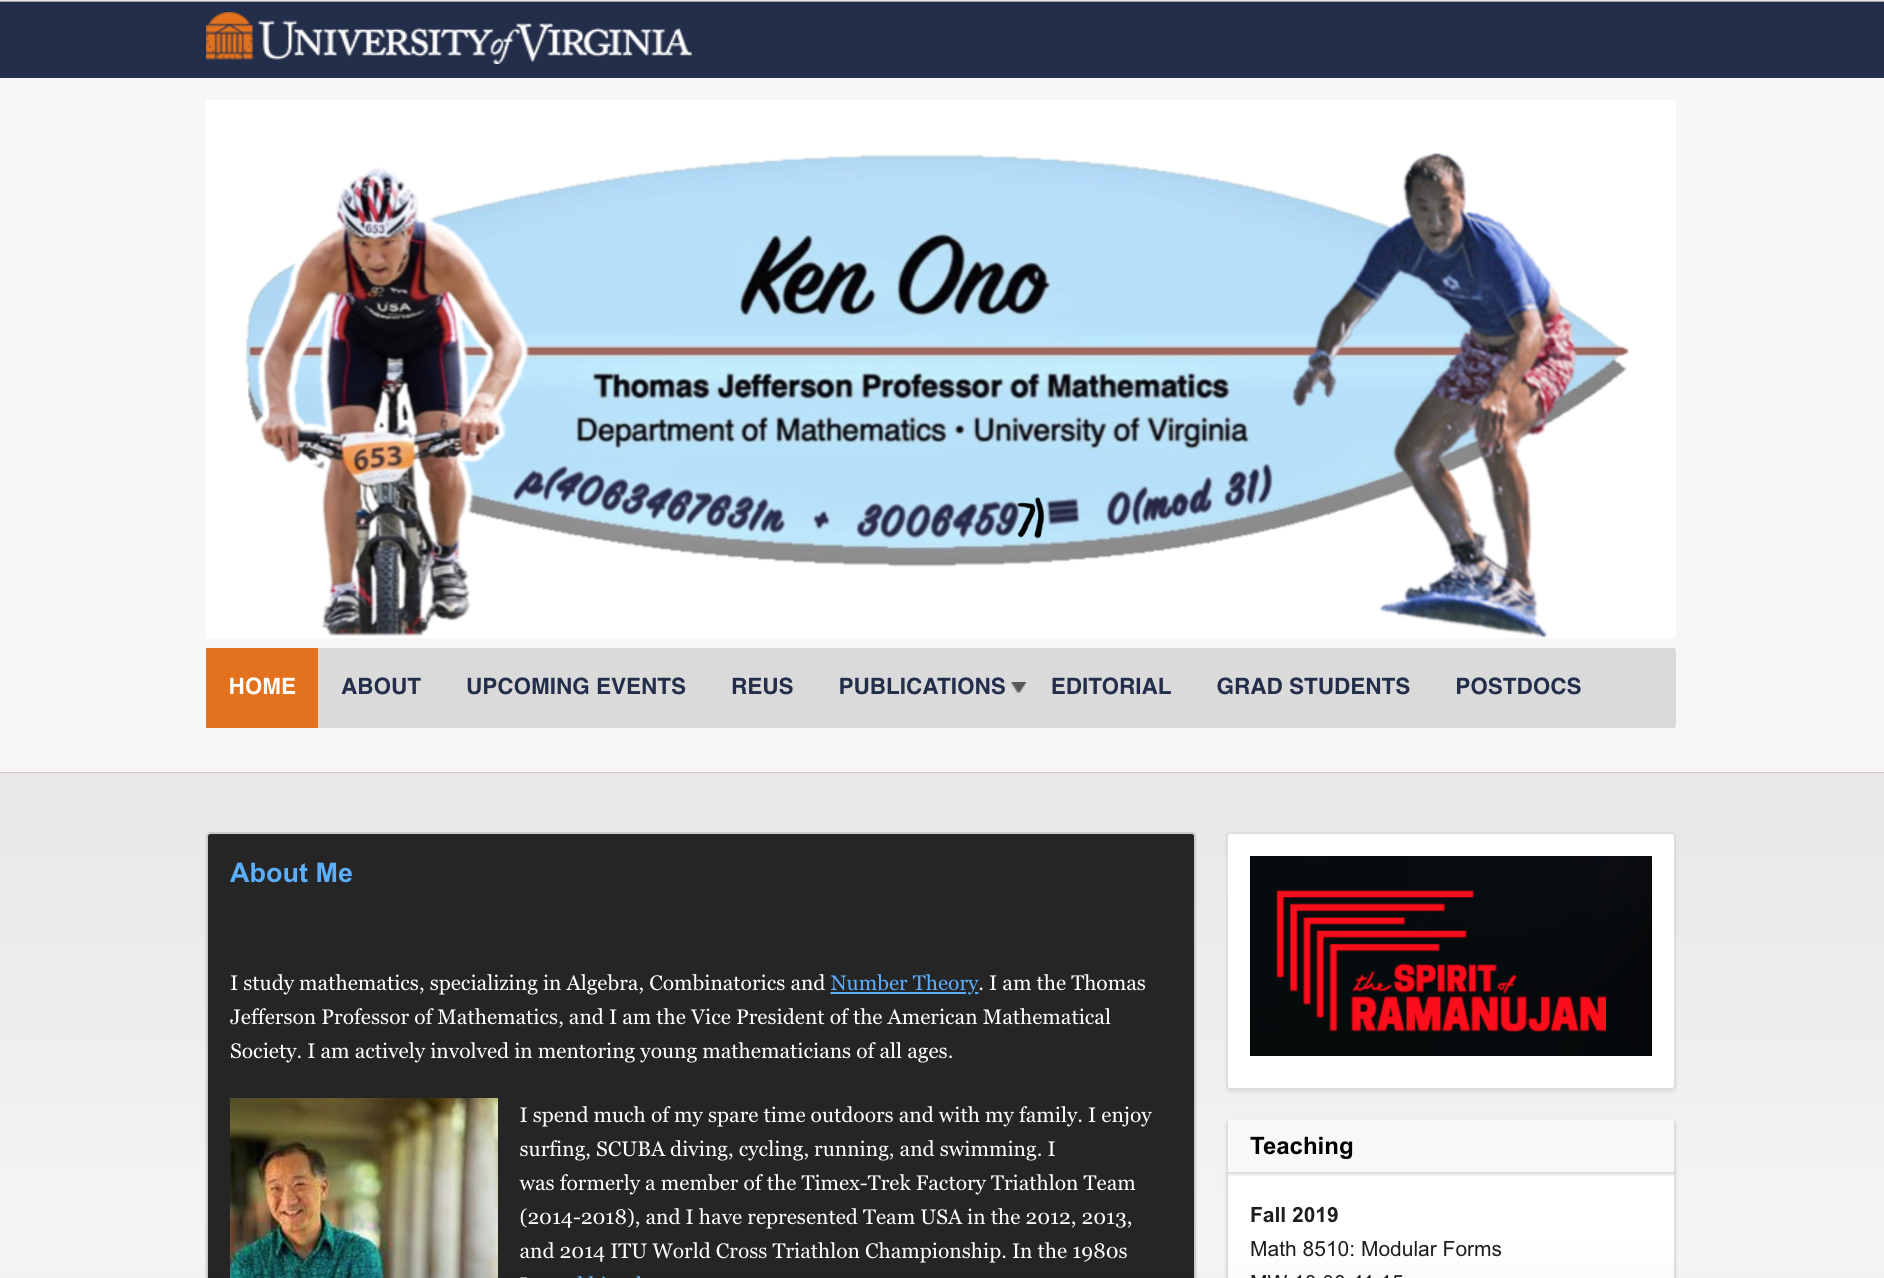 Ken Ono website example